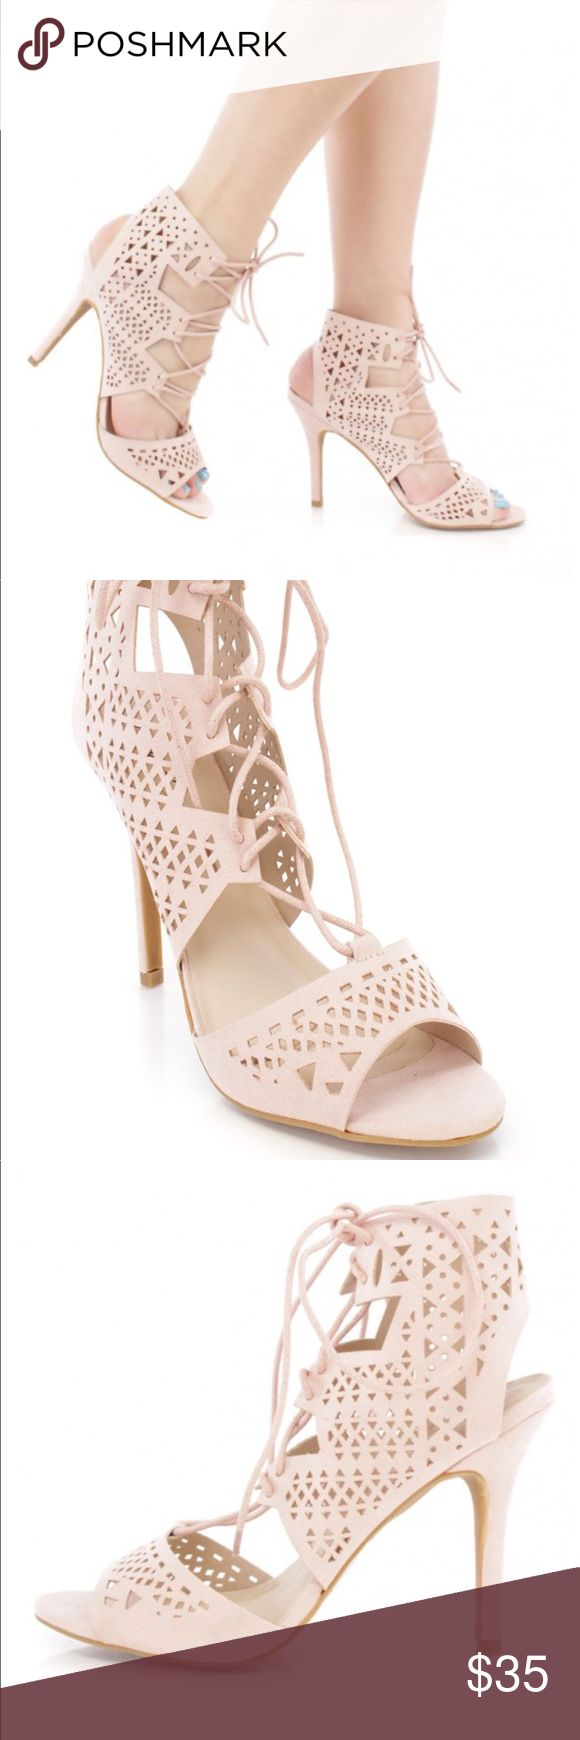 """NEW in box!!  nude tie up laser cut  heels Beautiful , sexy nude cut out heels in nubuck leatherette . These beautiful shoes have a feminine elegant look. Wear with jeans,dresses, skirts and shorts. nothing gives a lengthening look like a nude shoe does.   Goes wth everything!  Heel measures approx 4 """" in height.  Runs true to size and even a little large. If you're in-between sizes size down. . Brand new in box. Various sizing available. non-skip pad on sole. Shoes"""